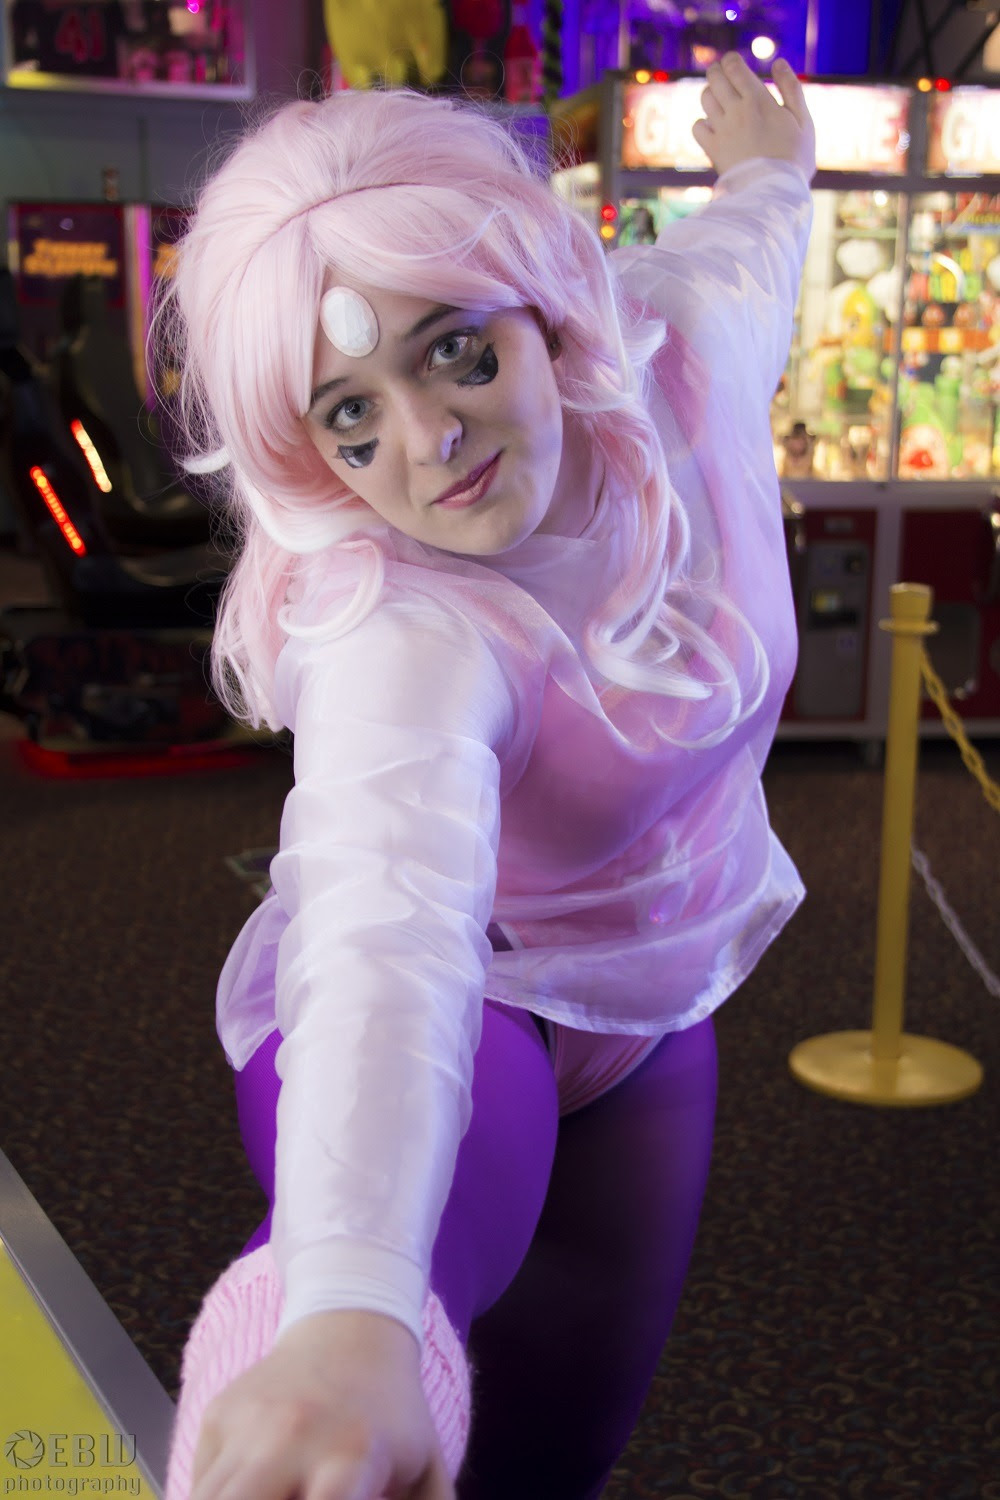 Rainbow Quartz from Steven Universe at Colossalcon 2016 Cosplayer: @schizo-queer Photographer: @ebwphotography